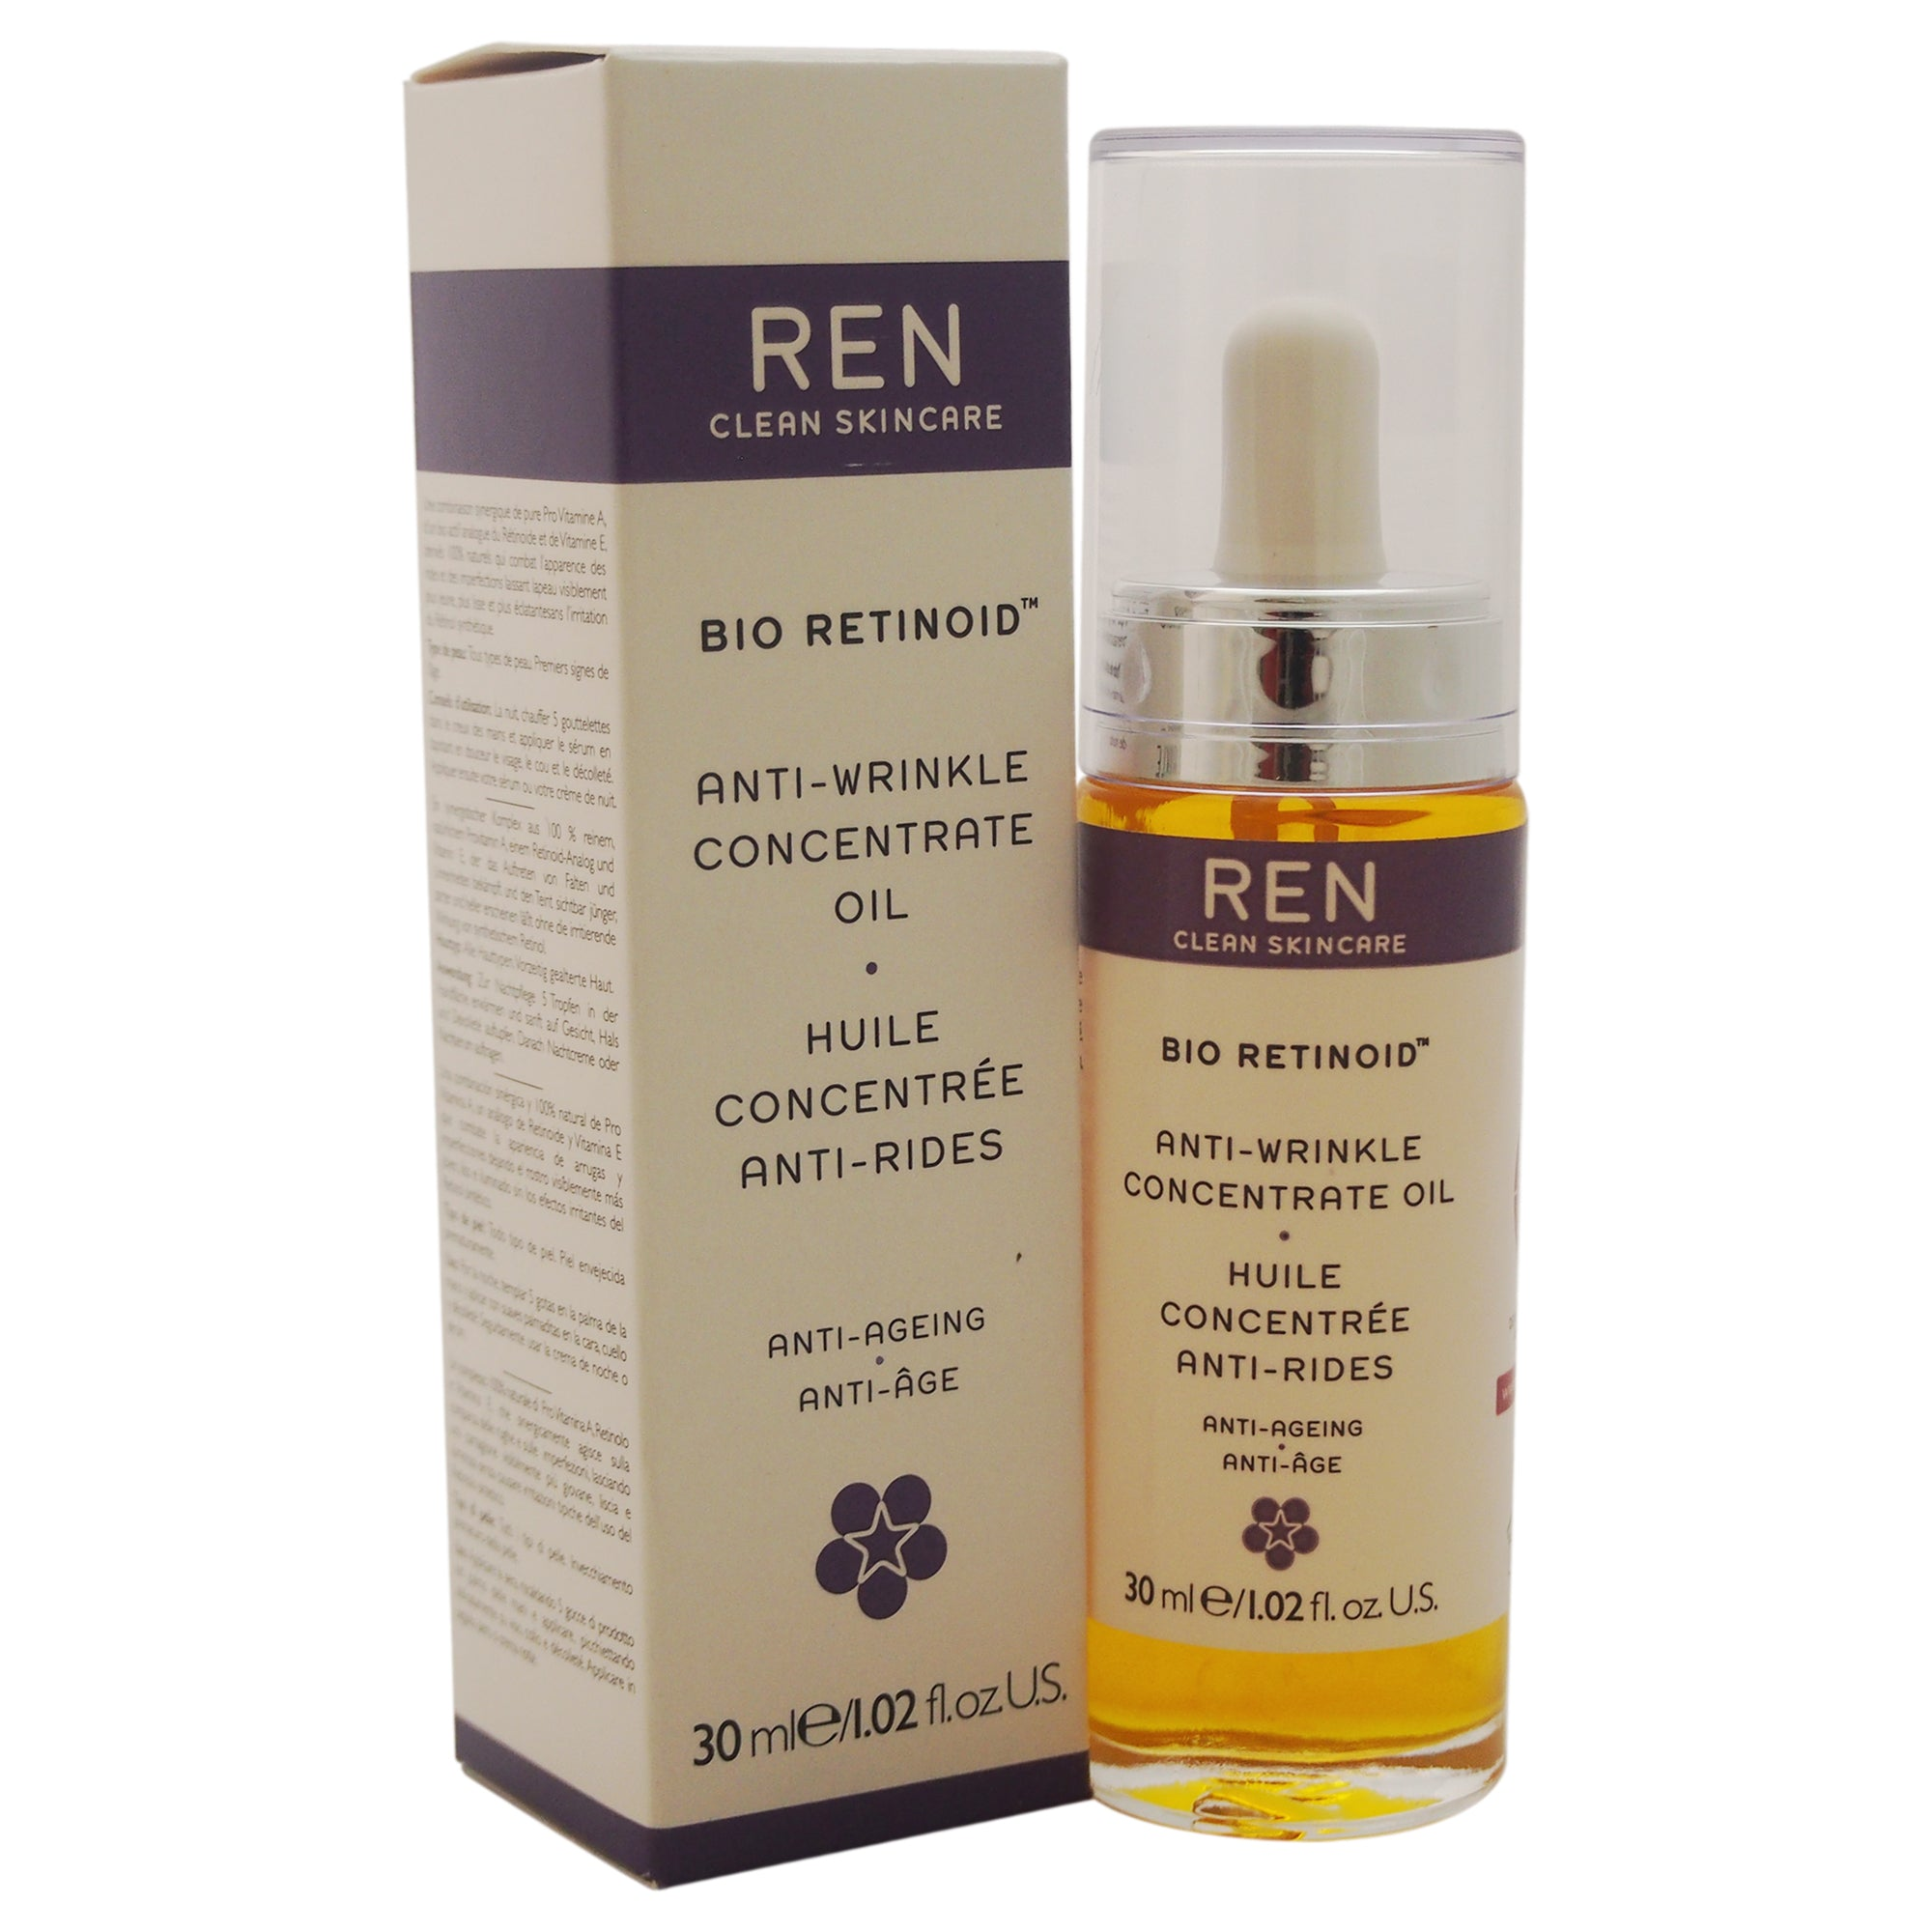 REN Bio Retinoid Wrinkle Concentrate Oil